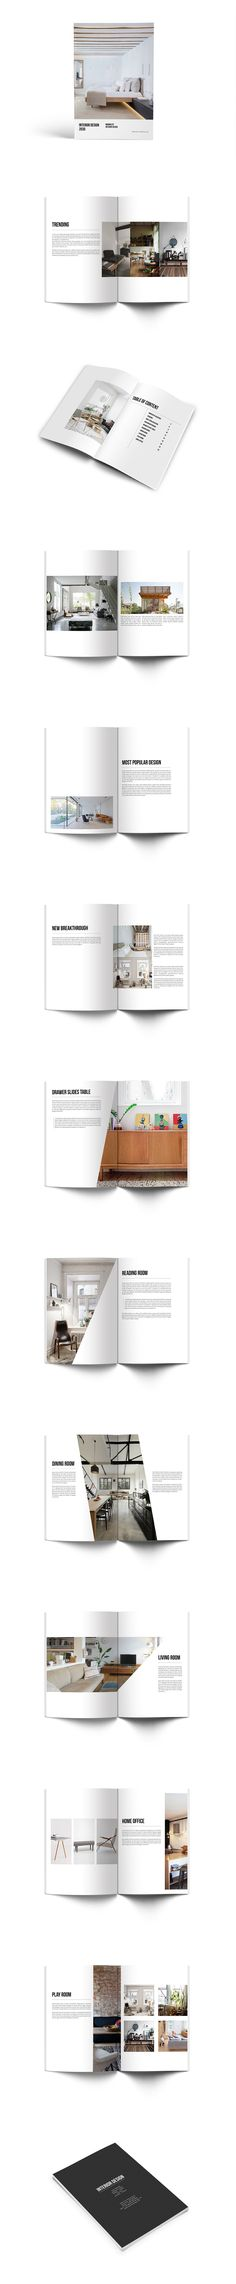 Interior Design Brochure Catalog Template InDesign INDD - 24 Pages